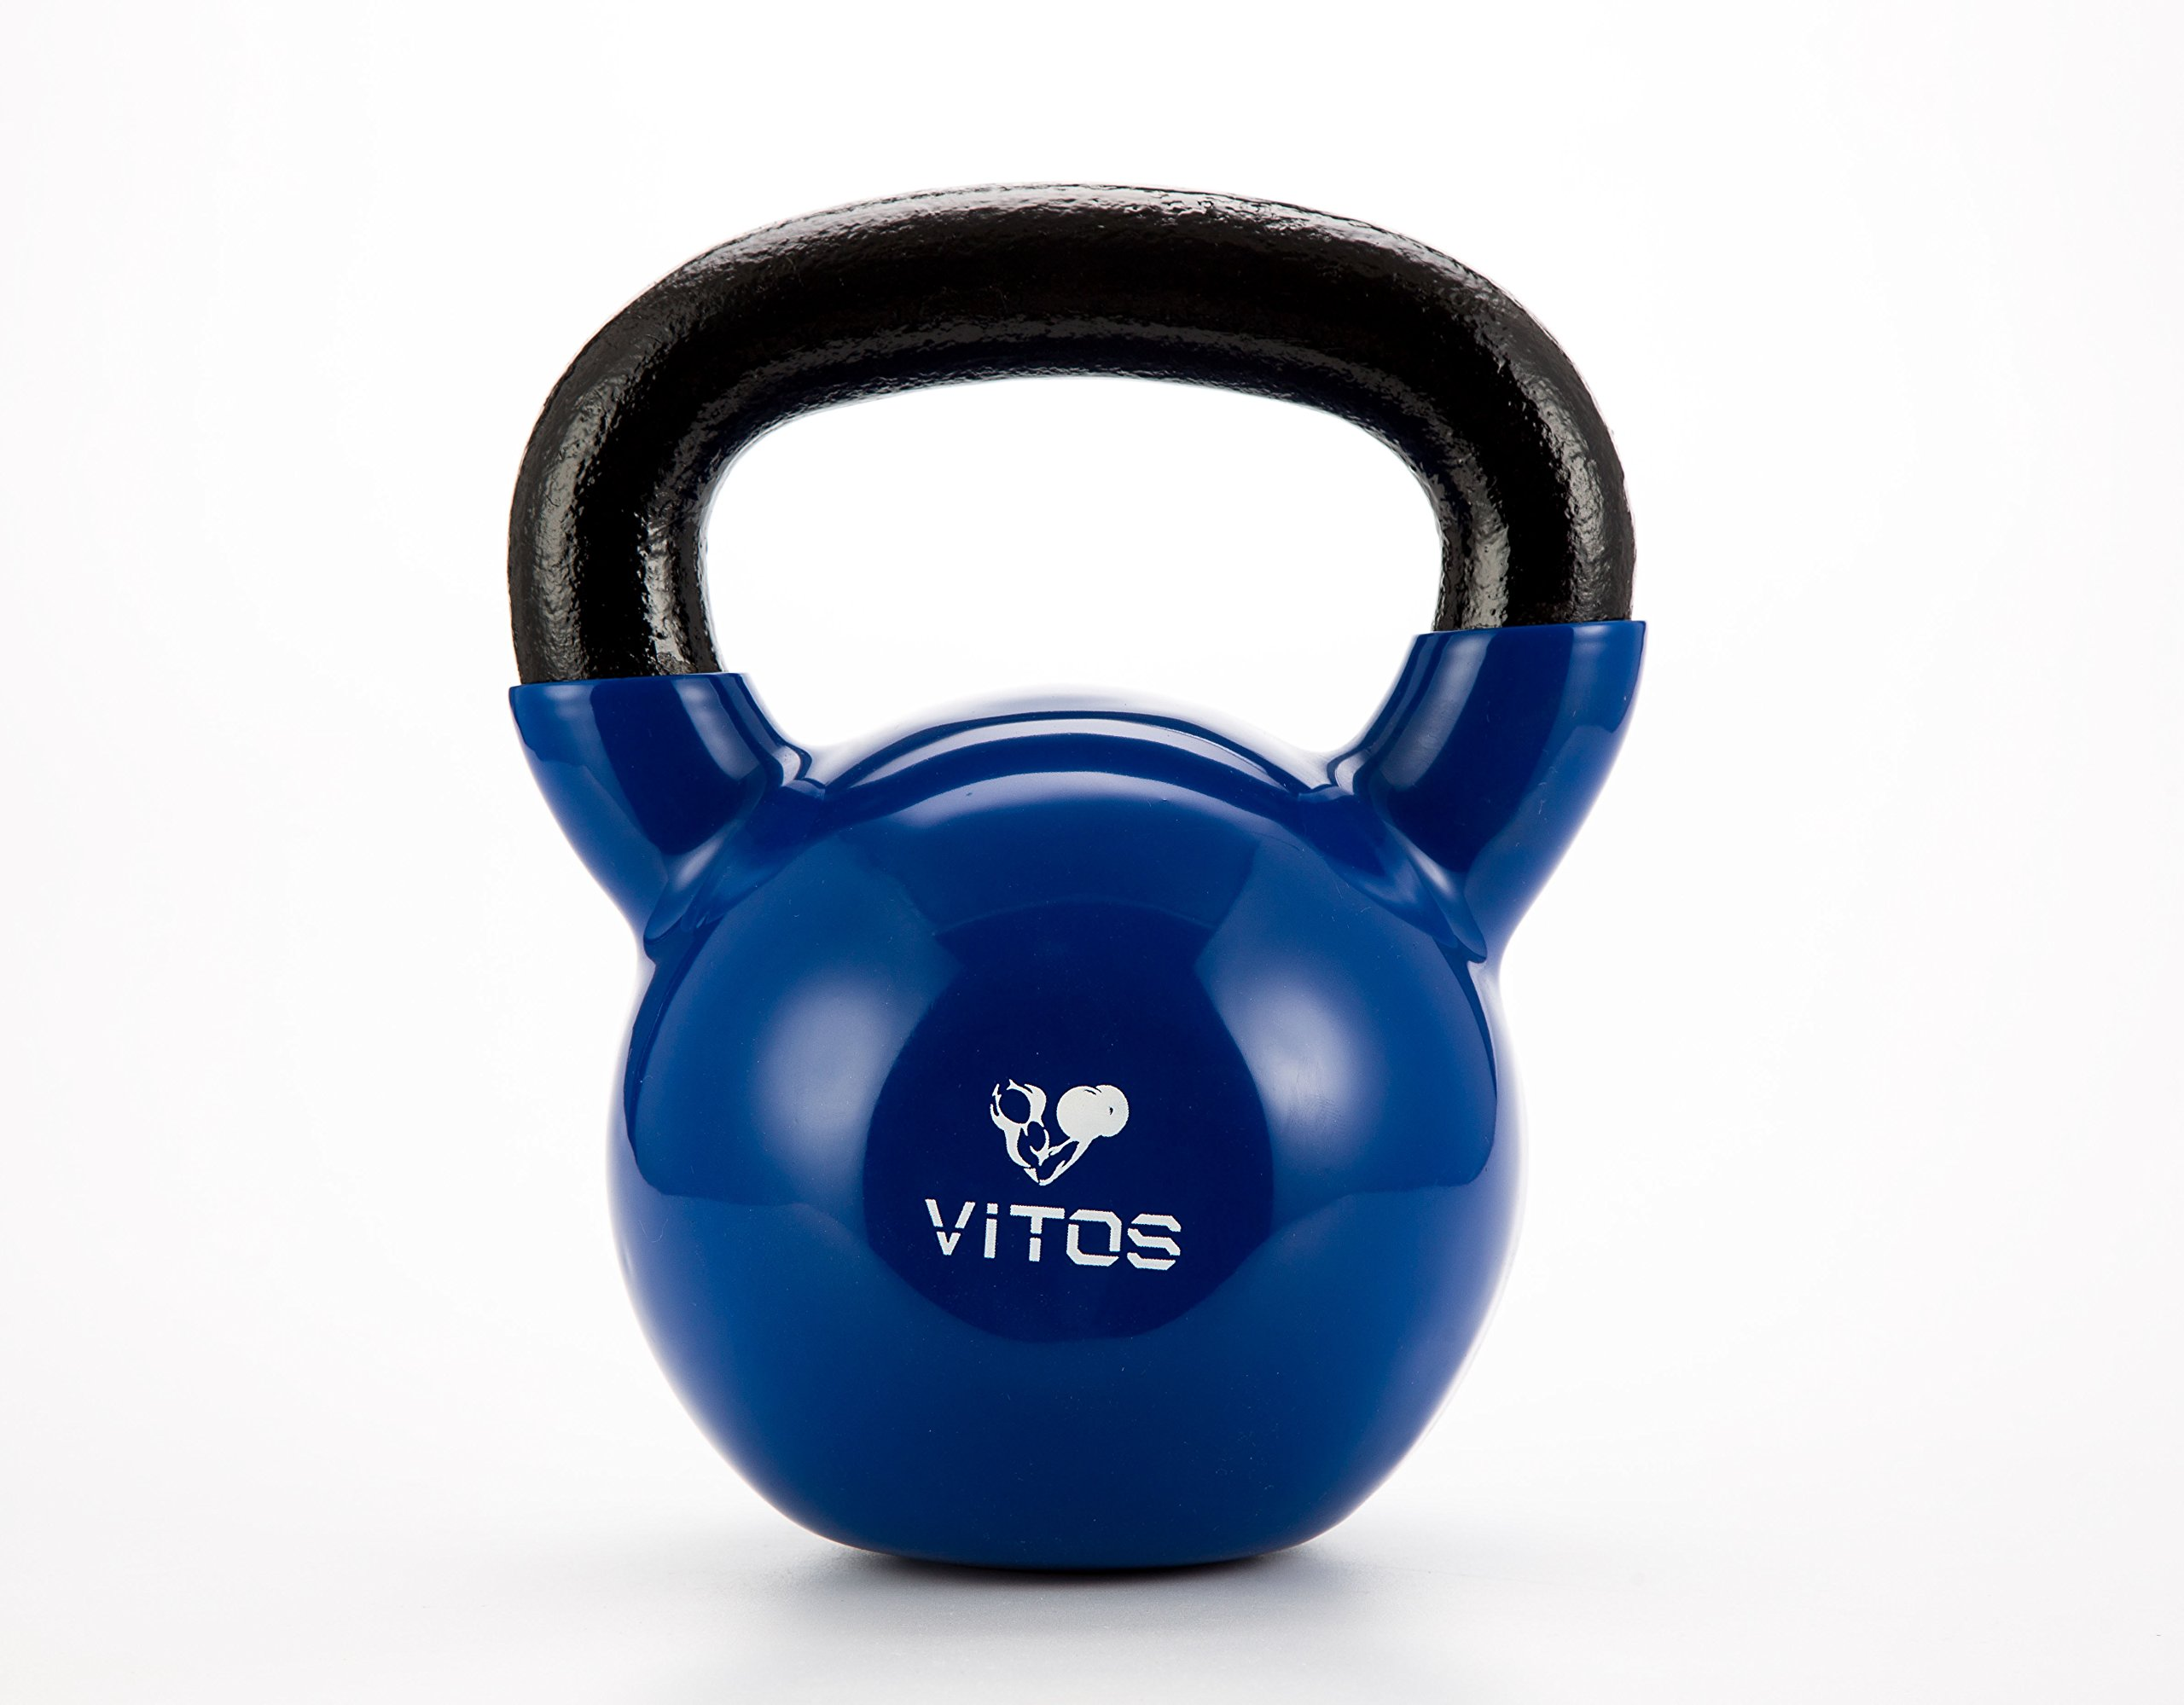 Vitos Fitness Vinyl Coated Kettlebell Weights 5 to 50 LBs (Blue, 45LB)